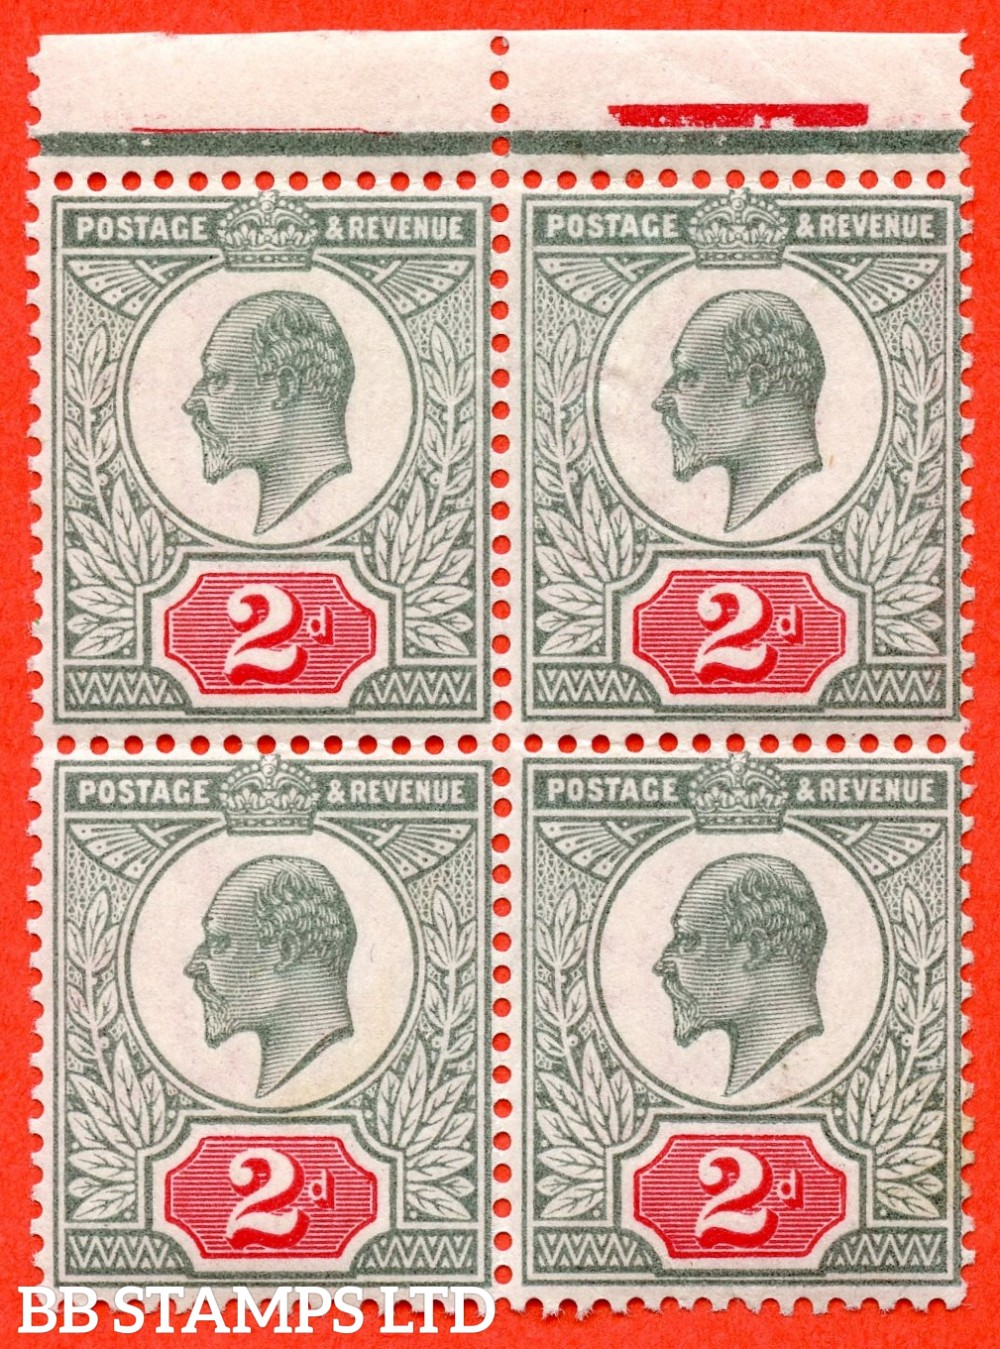 SG. 226. M11 (4). 2d Grey Green & Carmine Red. A super UNMOUNTED MINT top marginal block of 4. A scarce block these days.